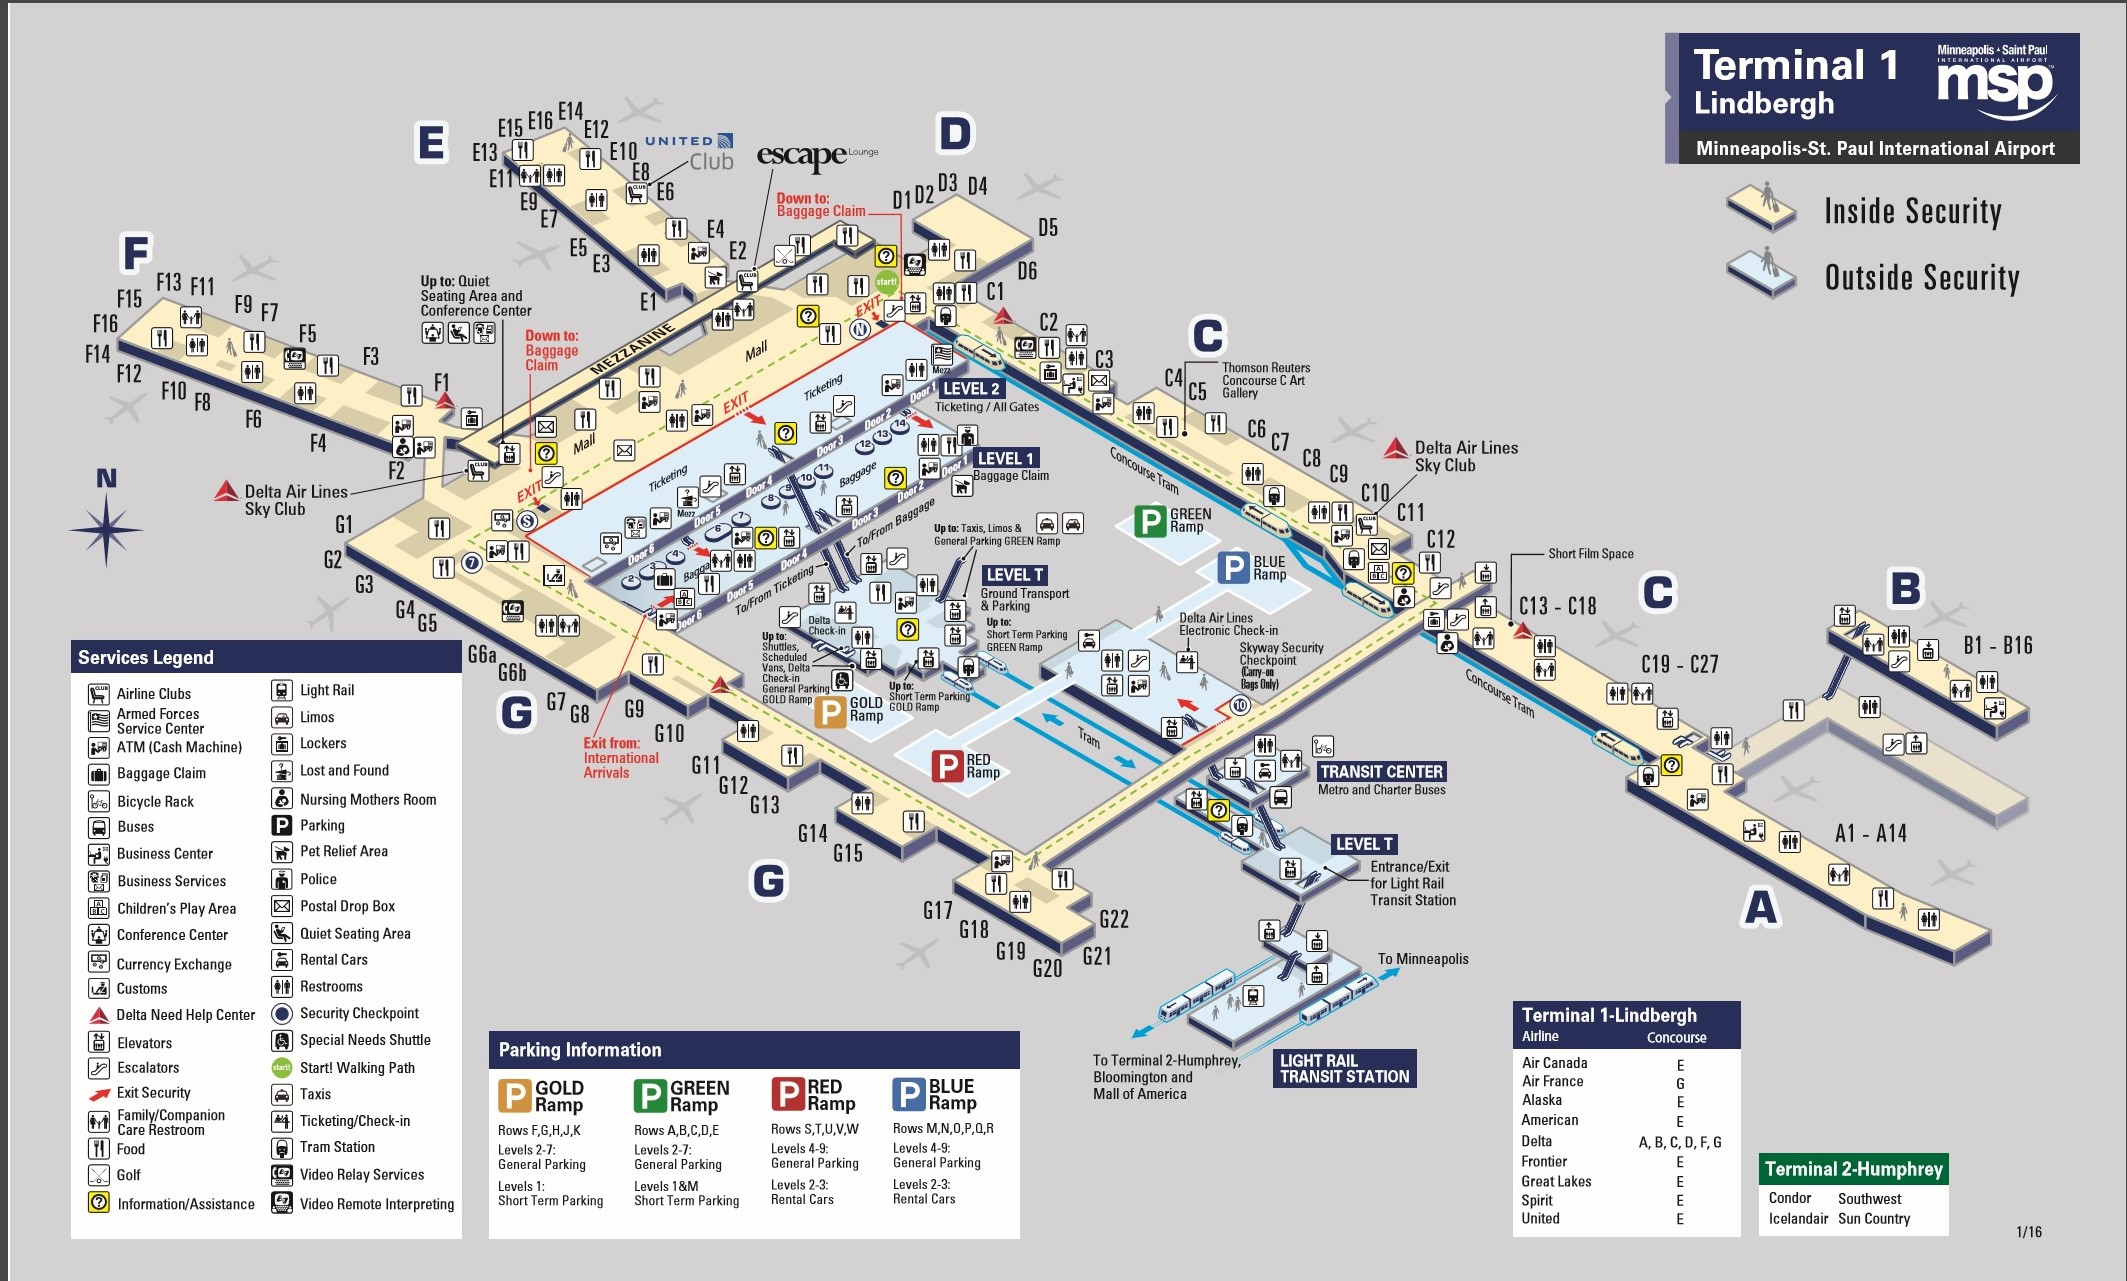 msp airport map. delta domestic first class – minneapolis to sacramento – sevenr